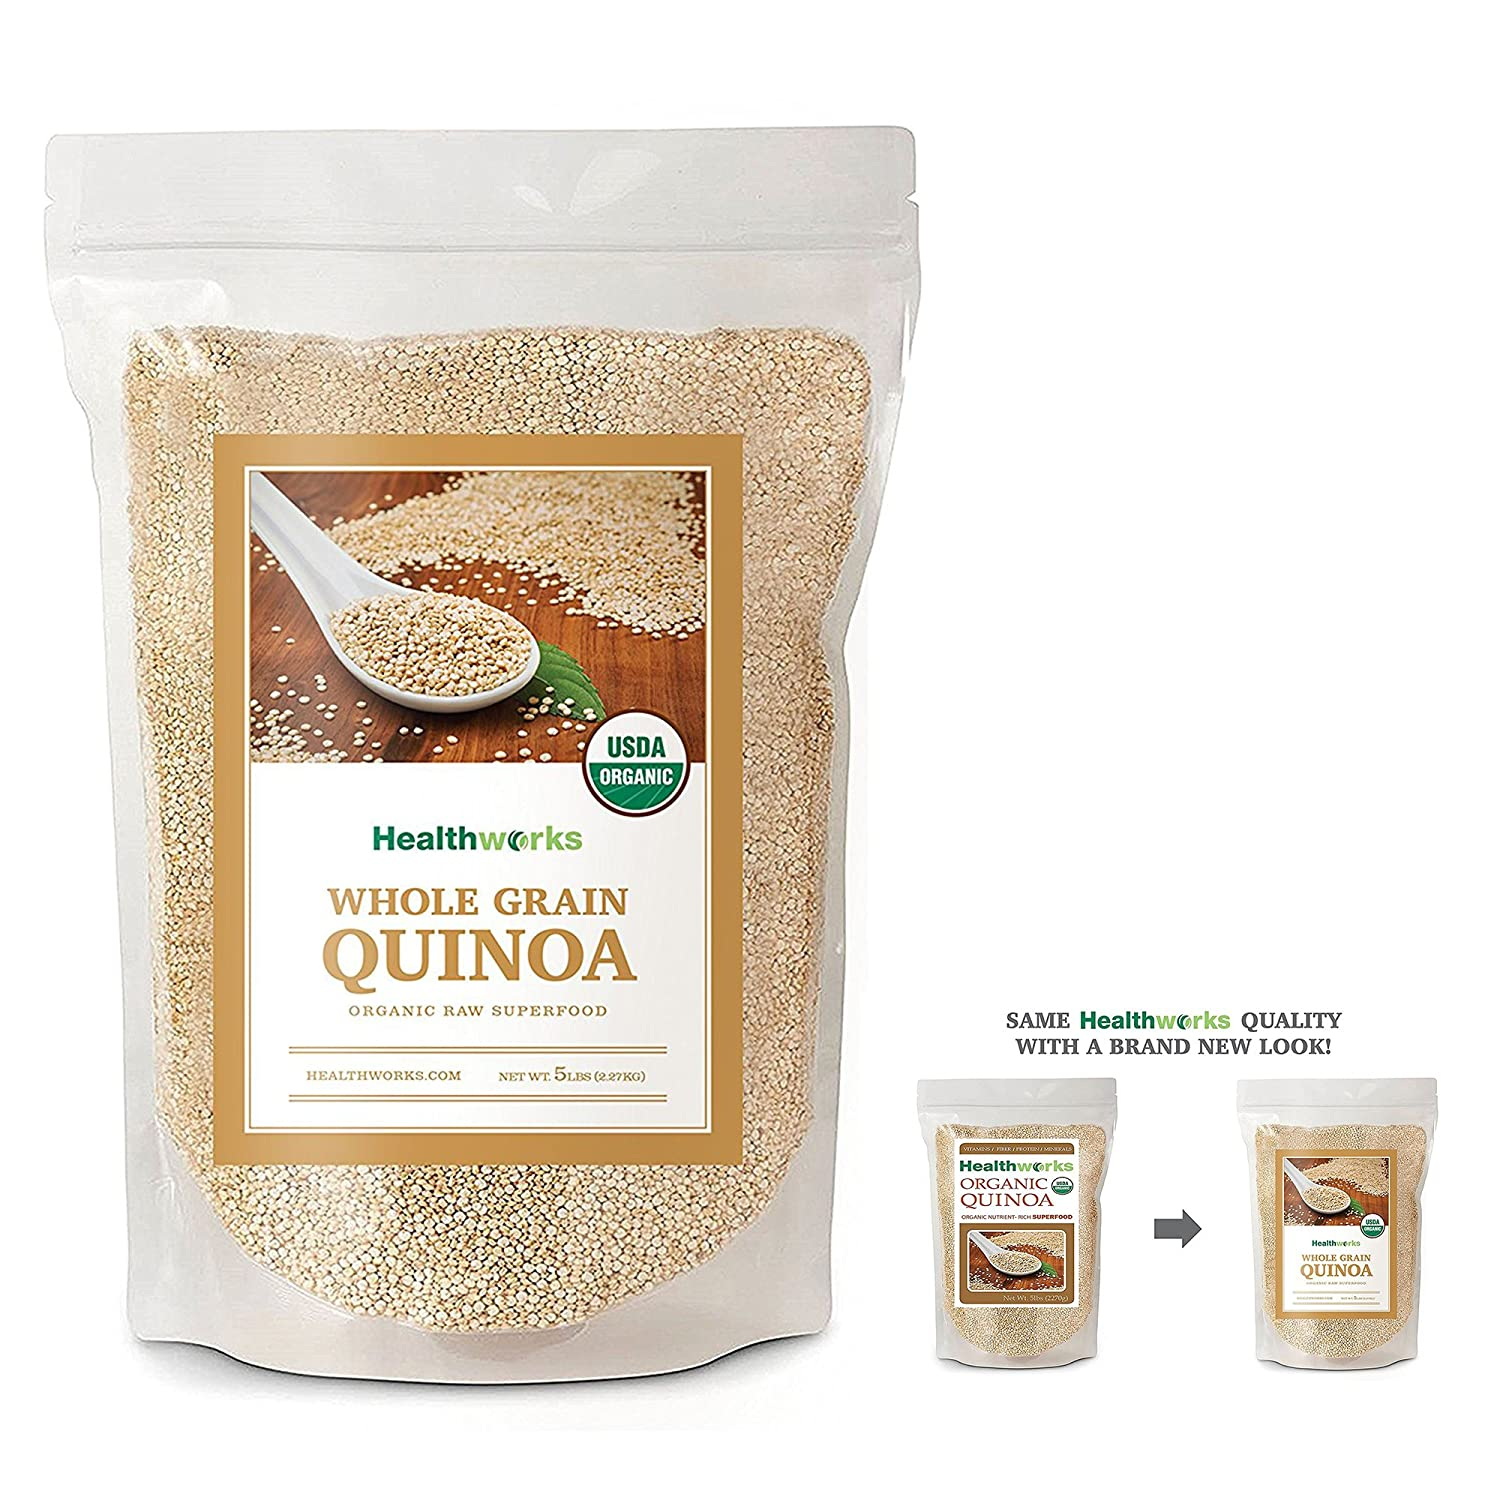 Healthworks Quinoa White Whole Grain Organic, 5lb